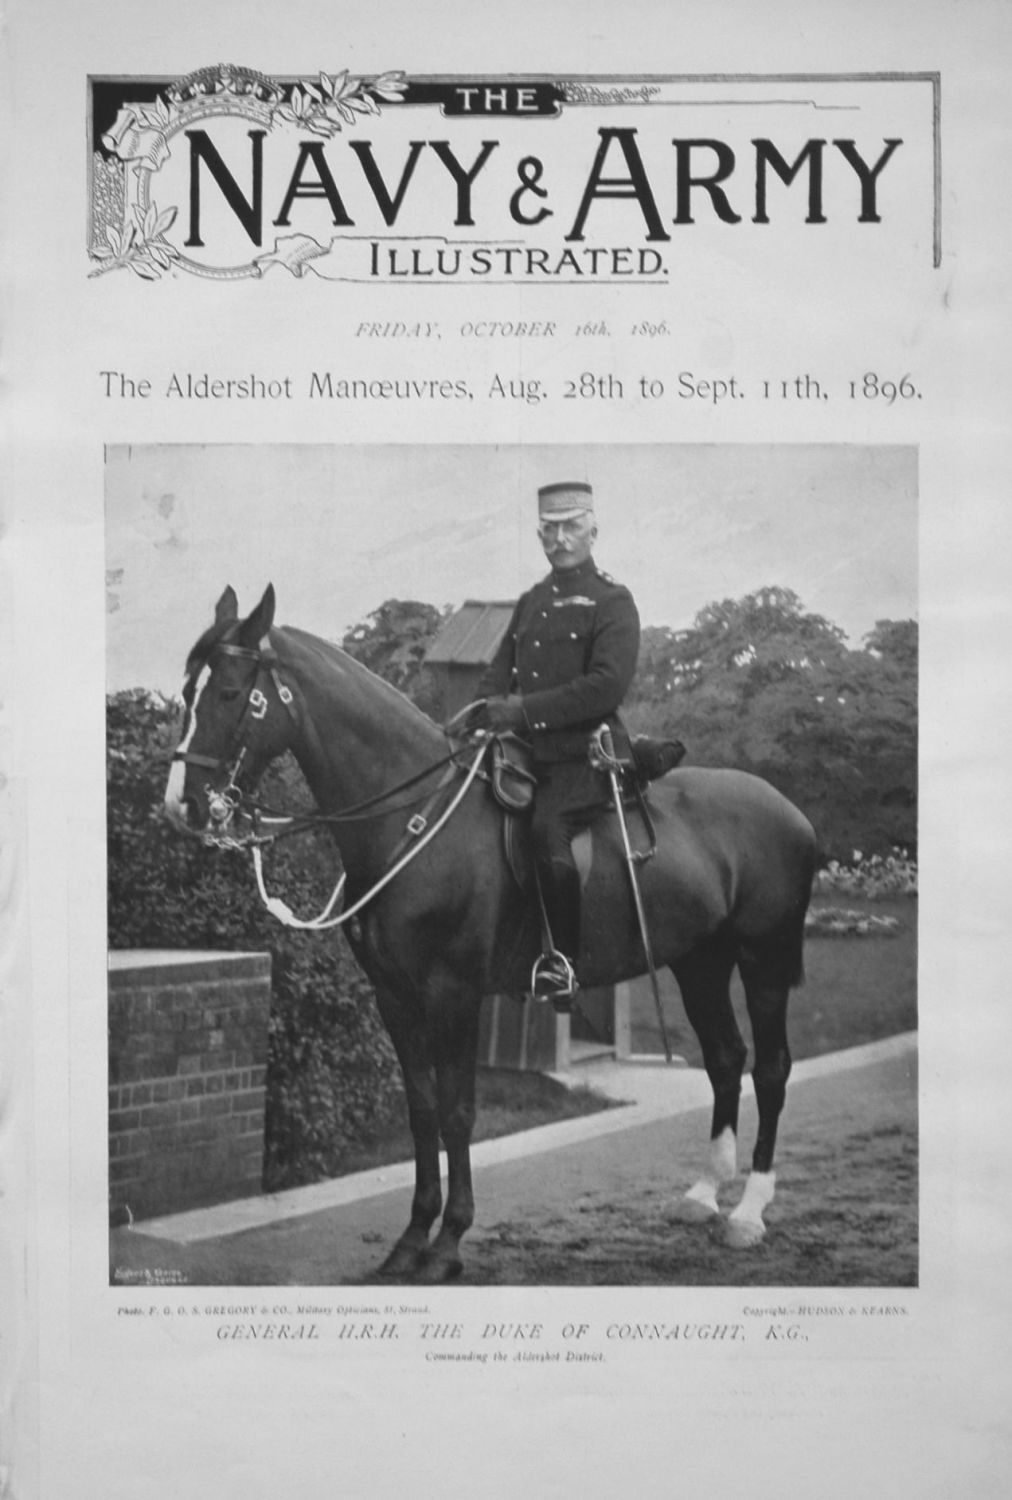 Navy & Army Illustrated, October 16th 1896. (Special No.)